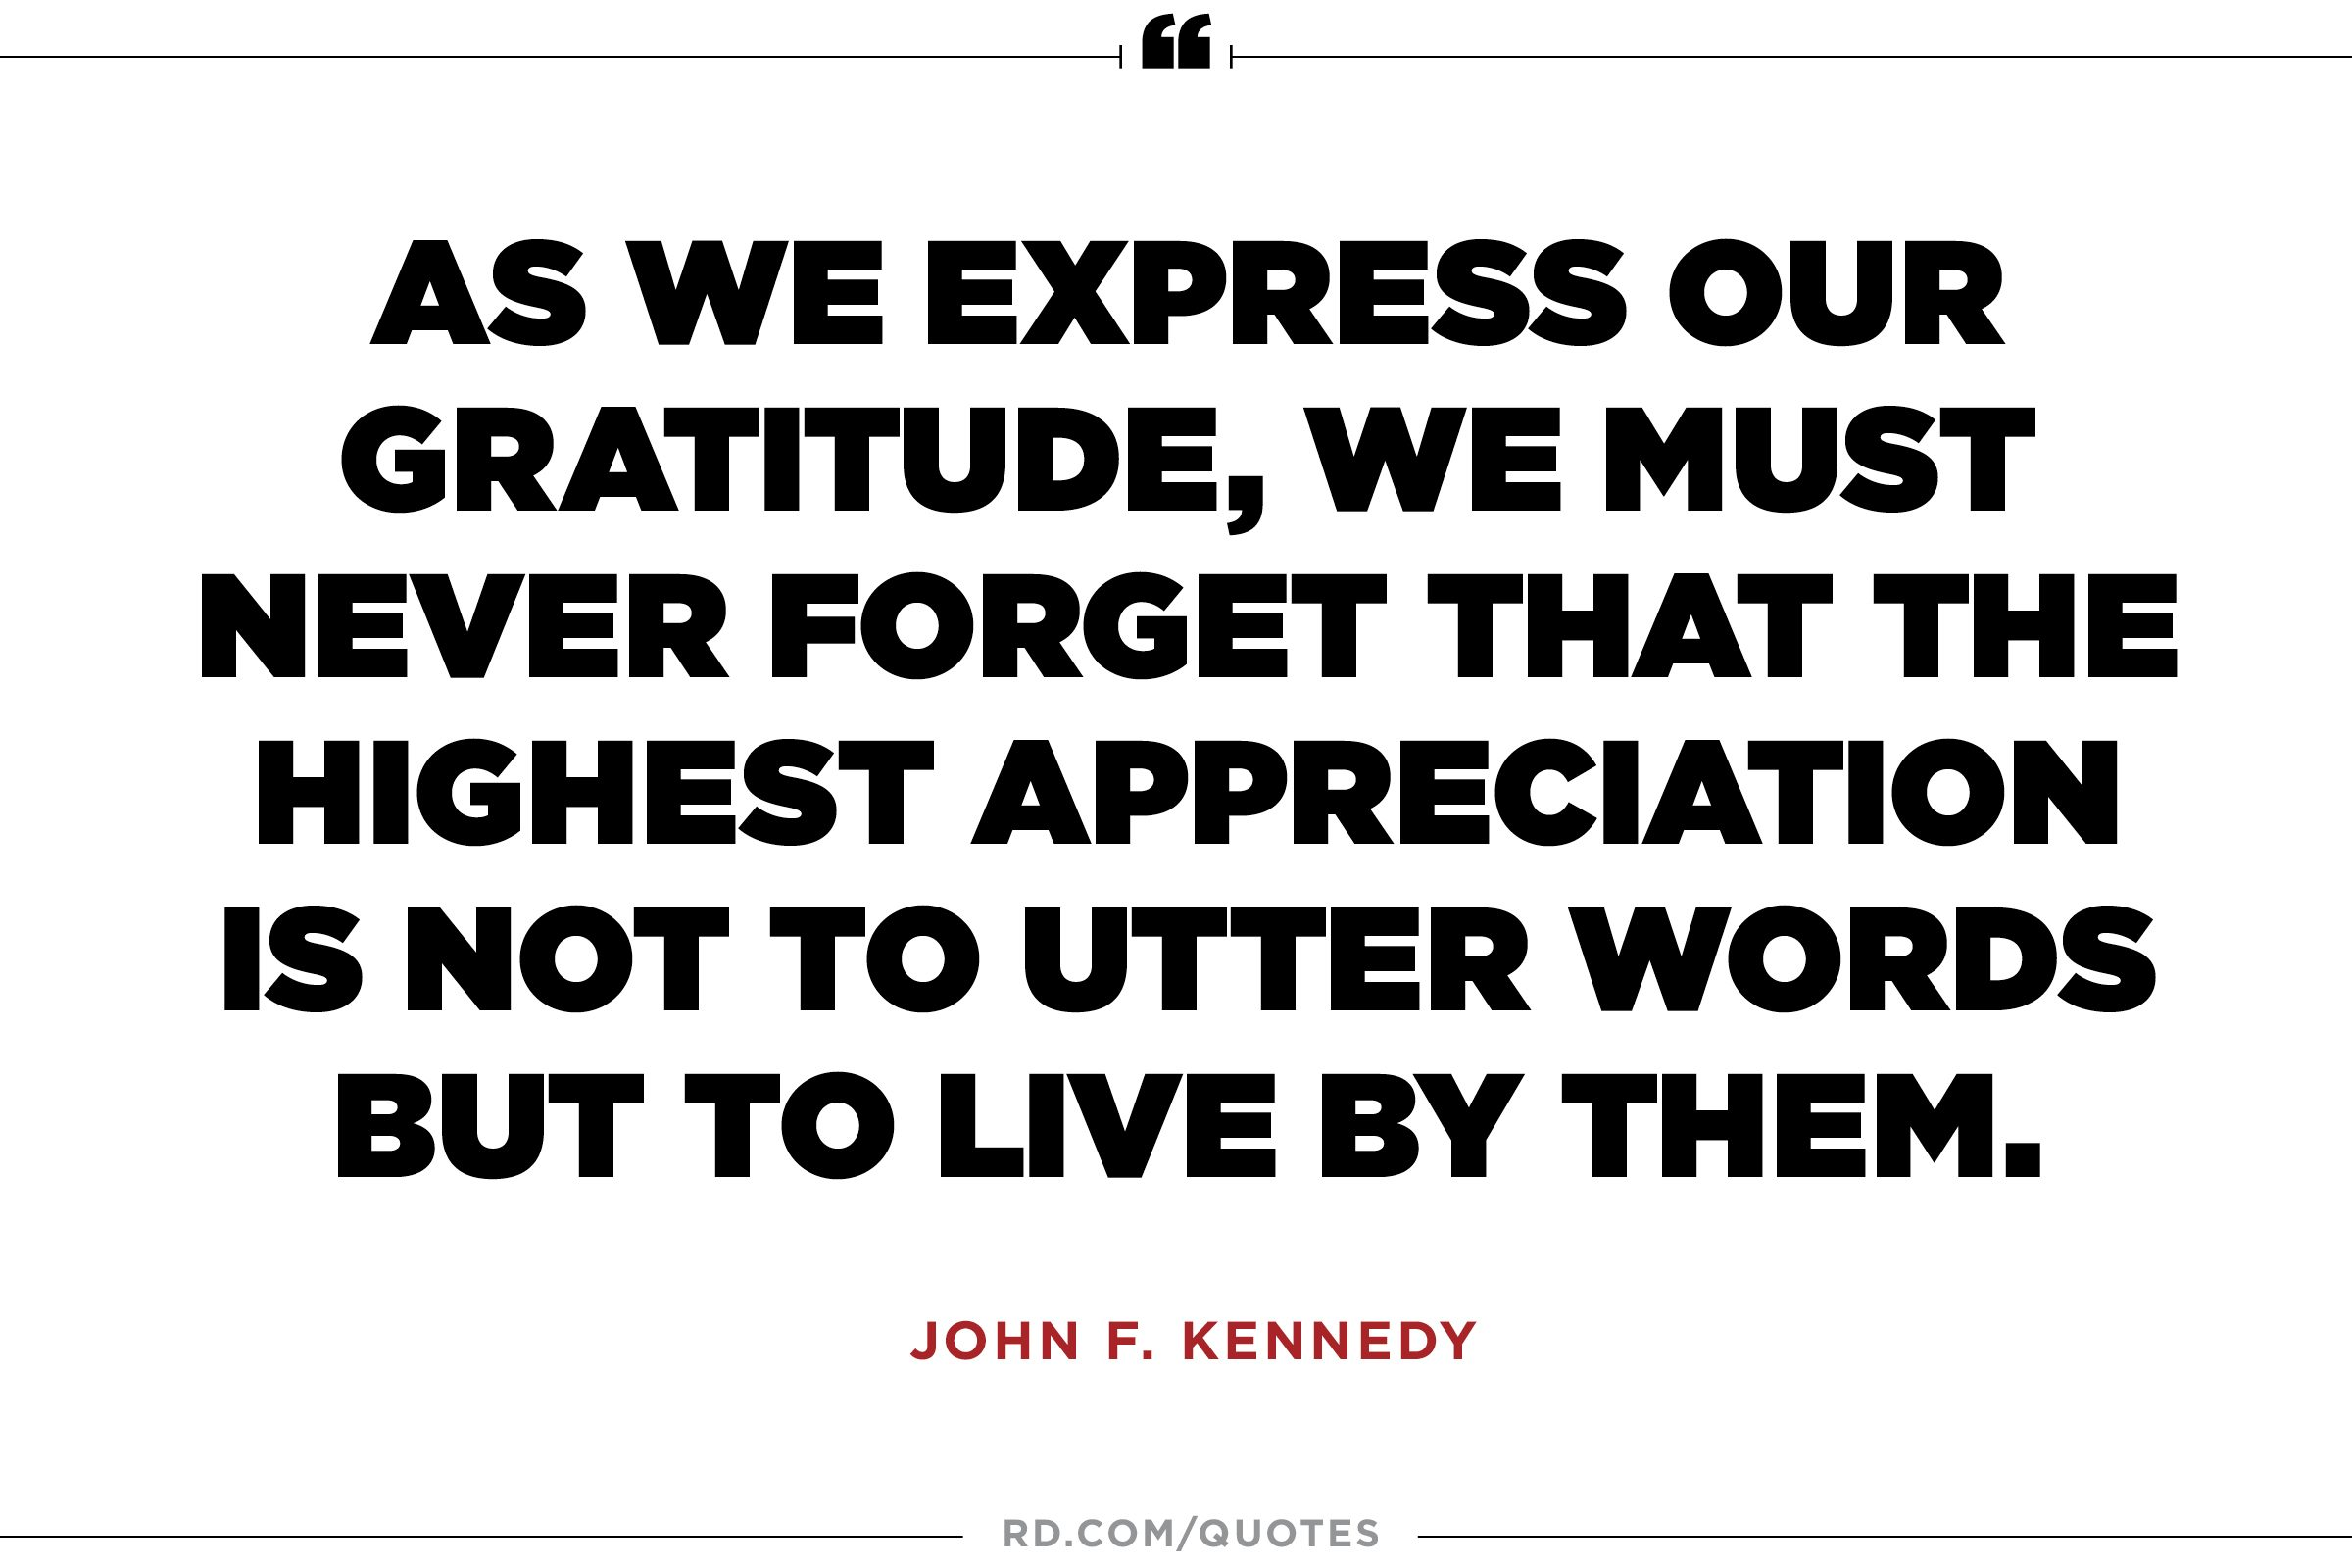 JFK on real gratitude